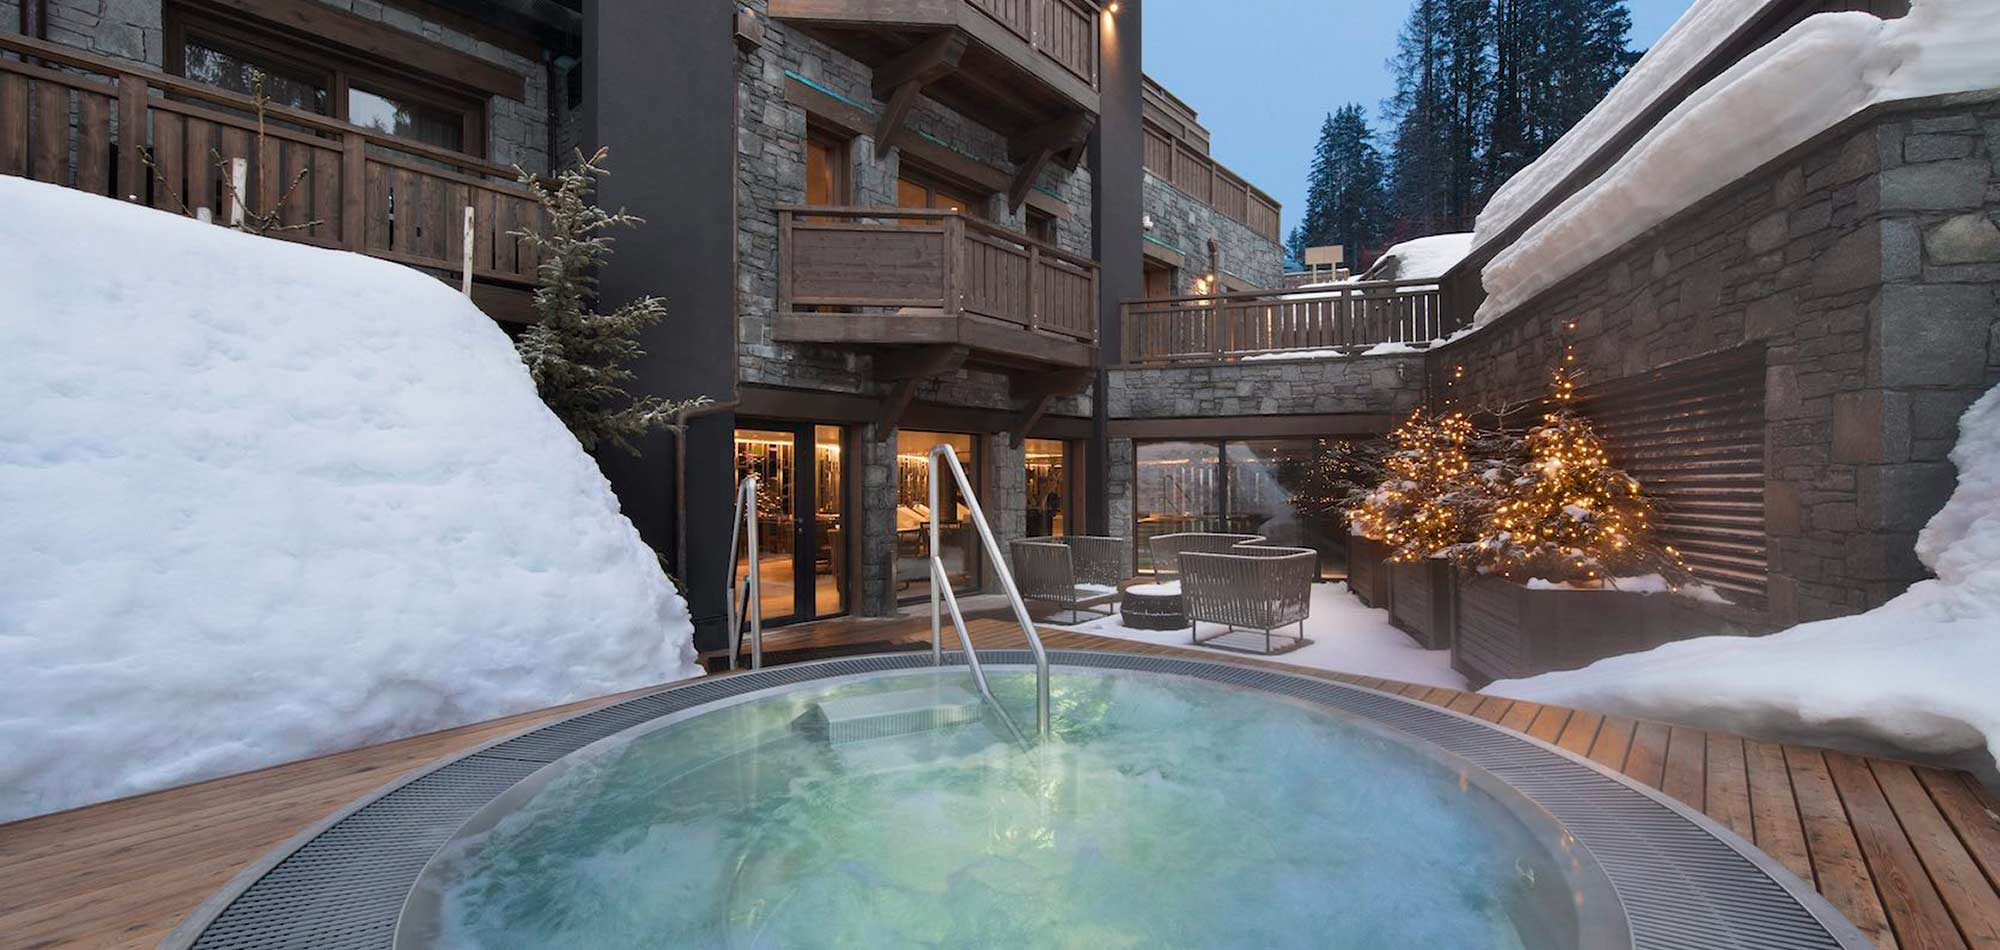 Hotel Barriere Les Neiges 5 Star Luxury Ski Hotels Courchevel